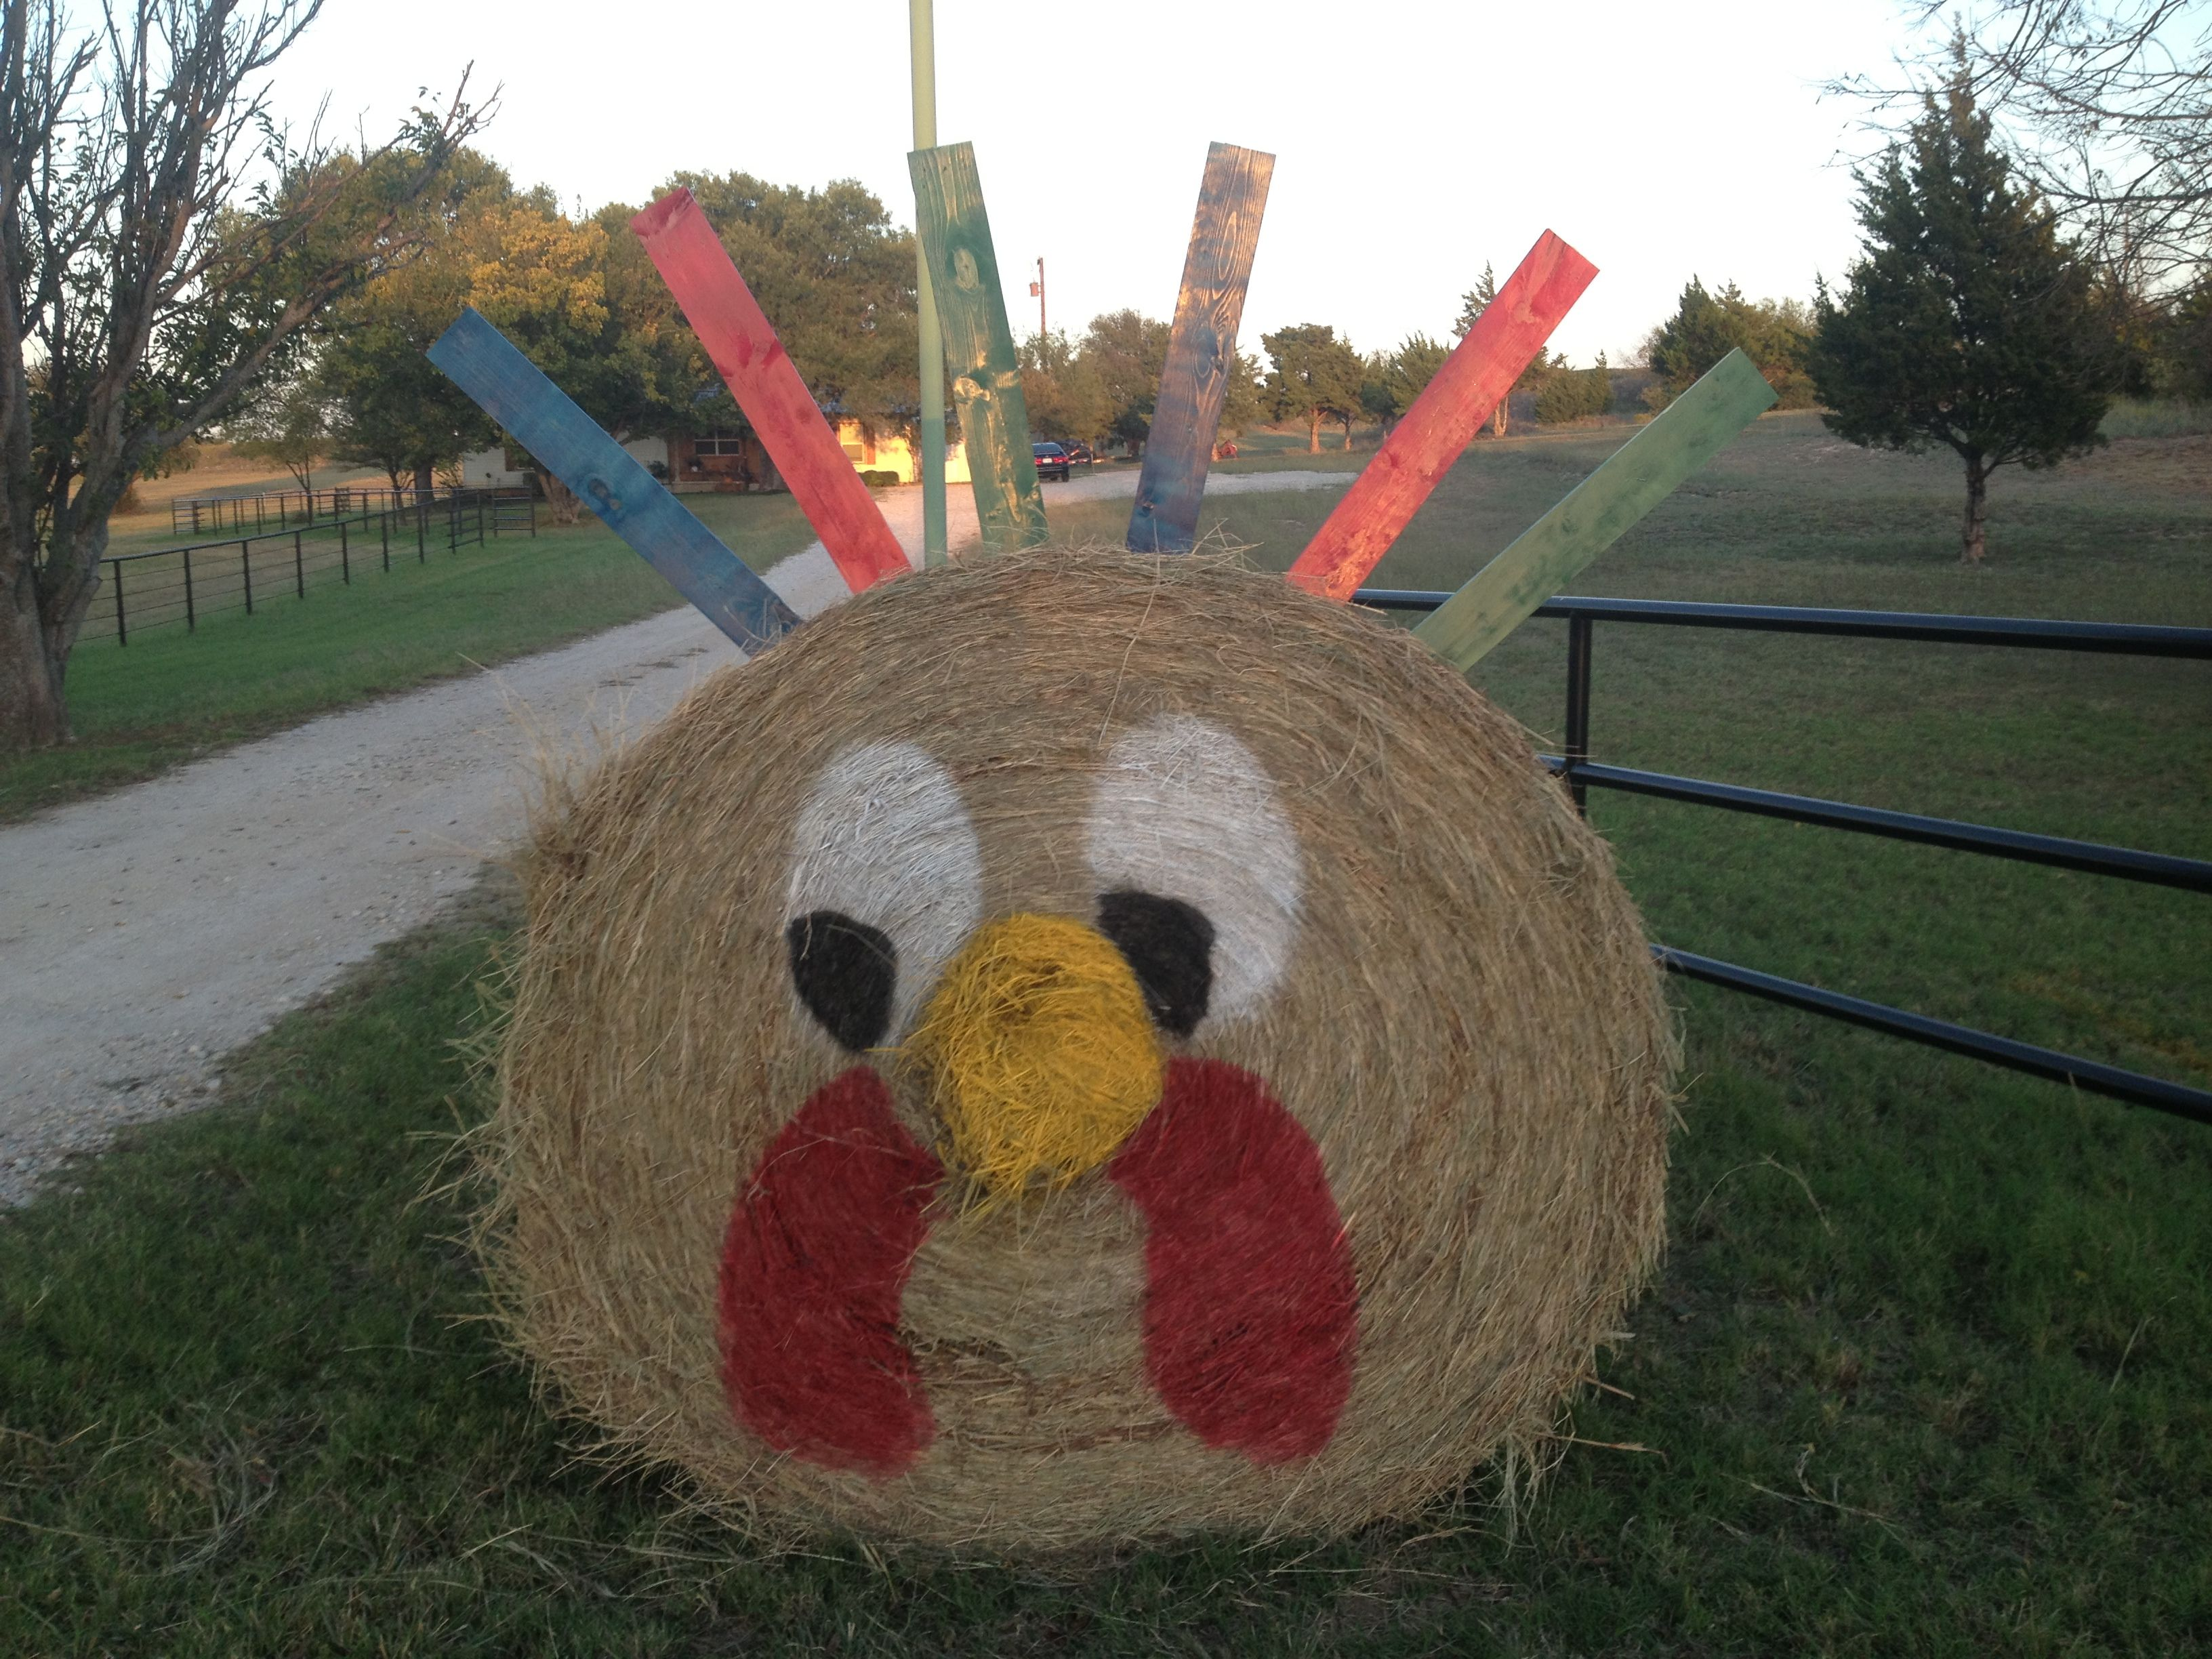 Hay Decoration Turkey Hay Bale Hay Bale Creations Hay Bales Hay Bale